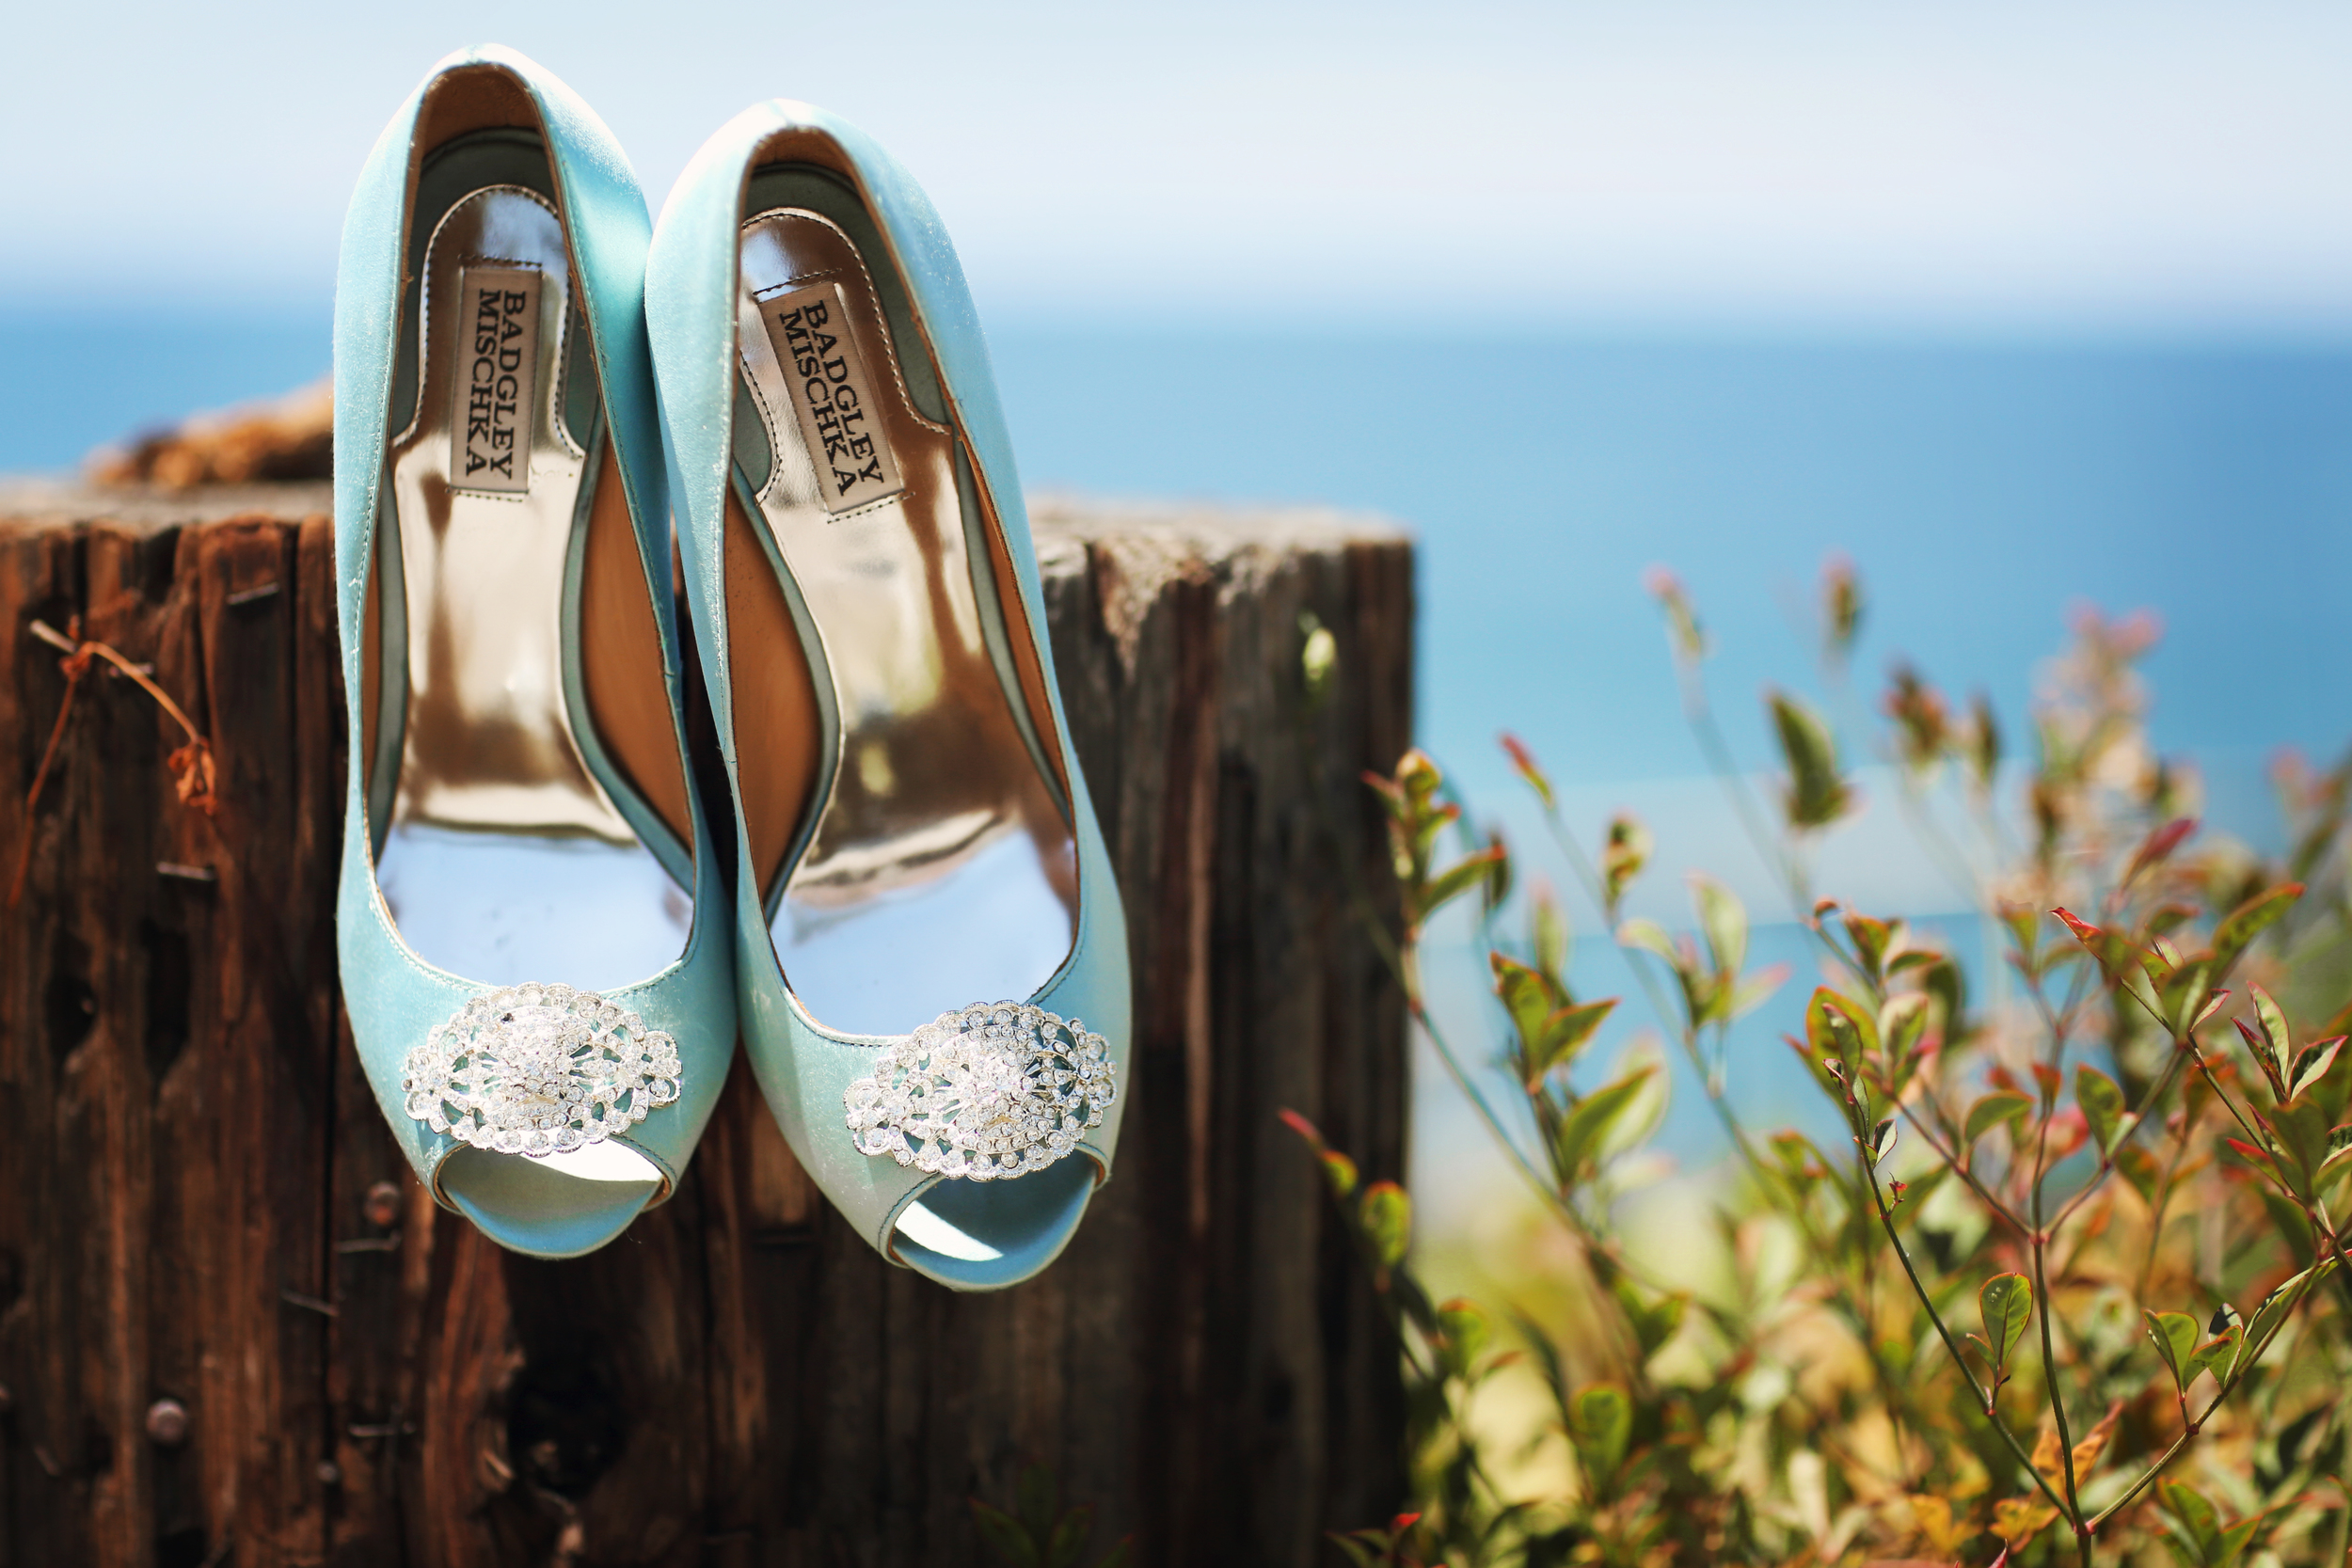 Badgley Mischka Bridal Heels - The Overwhelmed Bride Wedding Blog + Bridal Lifestyle